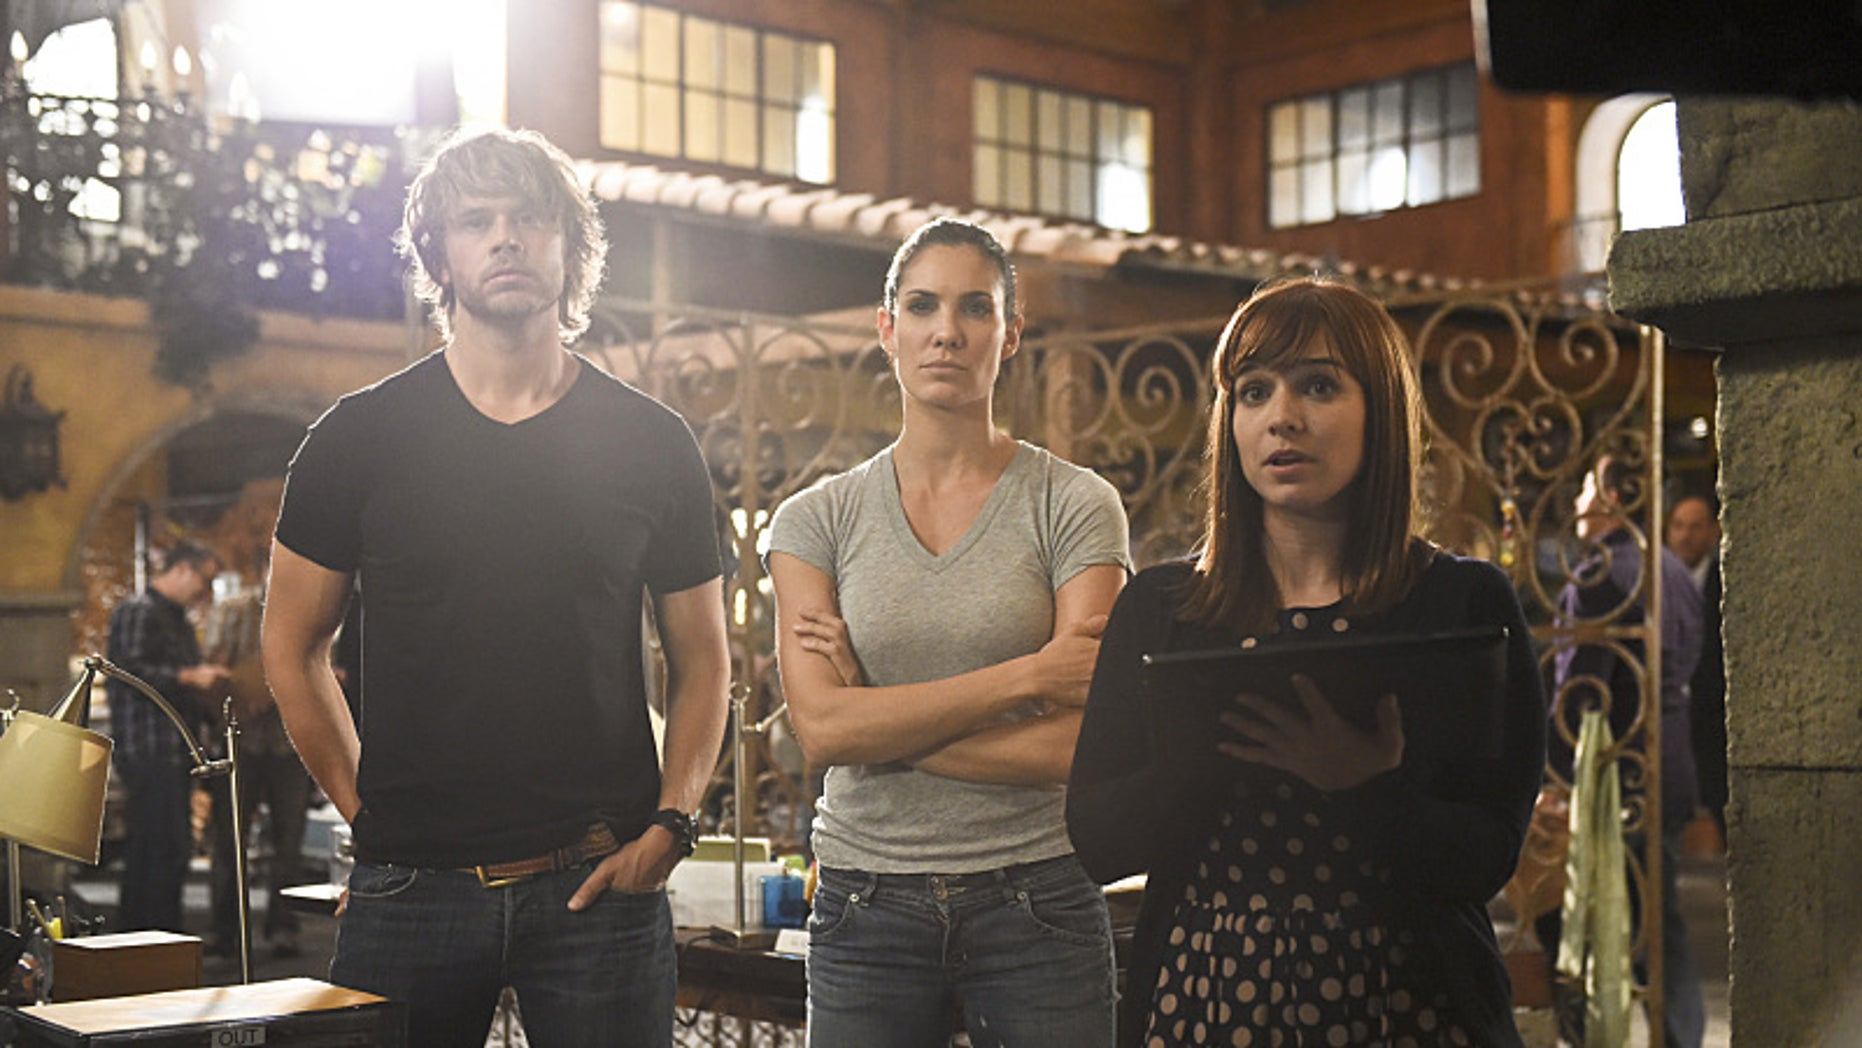 """""""Inelegant Heart"""" -- Pictured: Eric Christian Olsen (LAPD Liaison Marty Deeks), Daniela Ruah (Special Agent Kensi Blye) and Renée Felice Smith (Intelligence Analyst Nell Jones). The NCIS: LA team discovers that one of their own is compromised when they investigate the murder of a Navy contractor involved in illegal transactions of confidential data. Meanwhile, Hetty is under investigation in Washington, D.C., when the Department of Justice arrives in L.A. to investigate the team, on NCIS: LOS ANGELES, Monday, Oct. 6 (9:59-11:00, ET/PT), on the CBS Television Network Photo: Ron P. Jaffe/CBS ©2014 CBS Broadcasting, Inc. All Rights Reserved."""